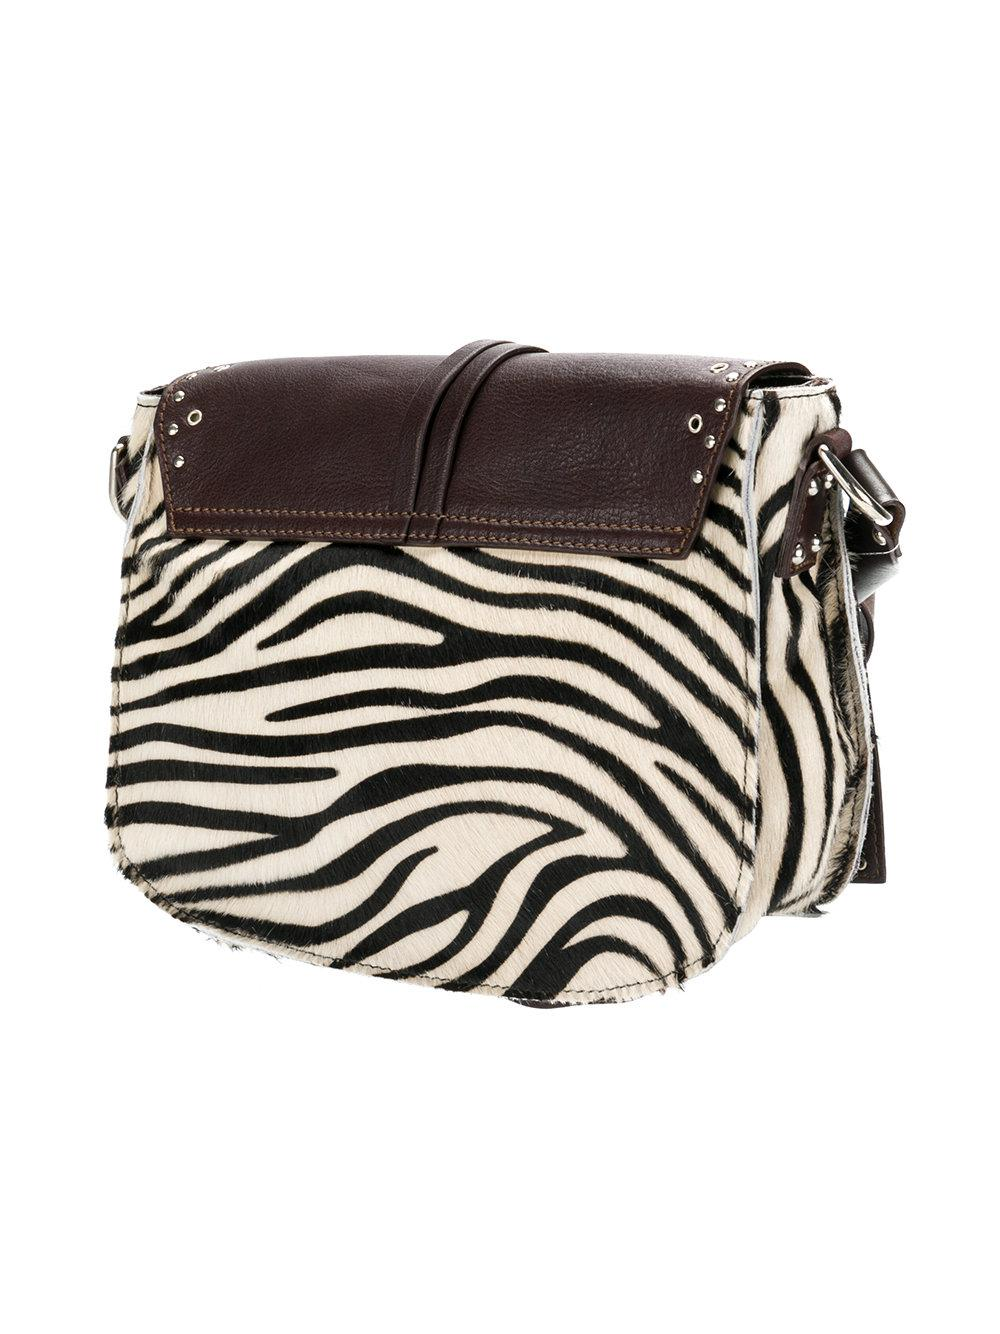 P.A.R.O.S.H. Leather Zebra Panel Crossbody Bag in Brown